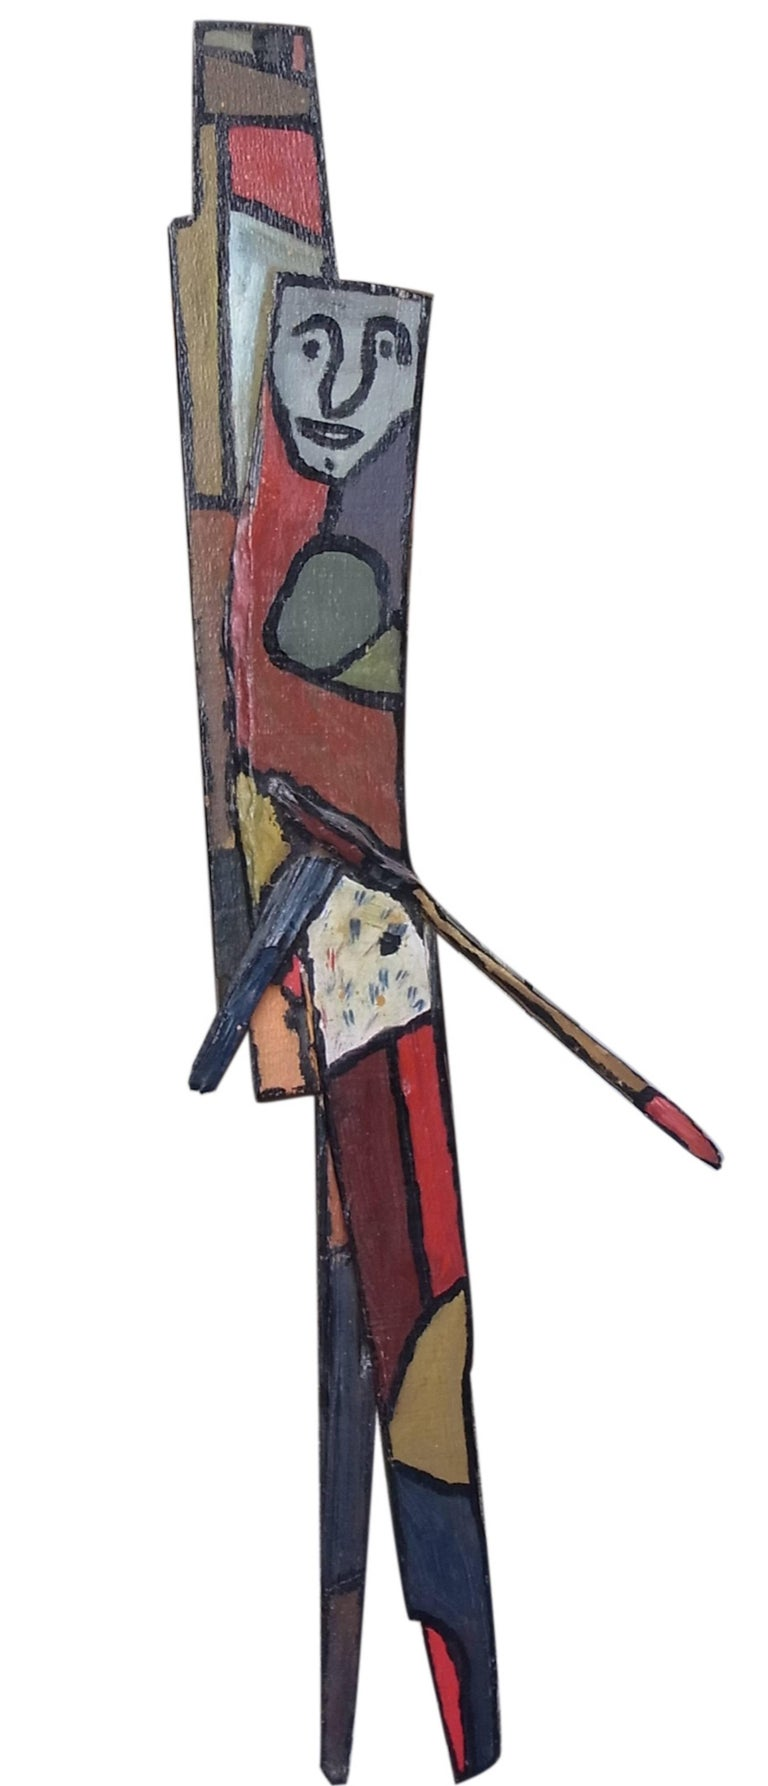 Gaston chaissac totem wood sculpture for sale at 1stdibs for Chaissac gaston